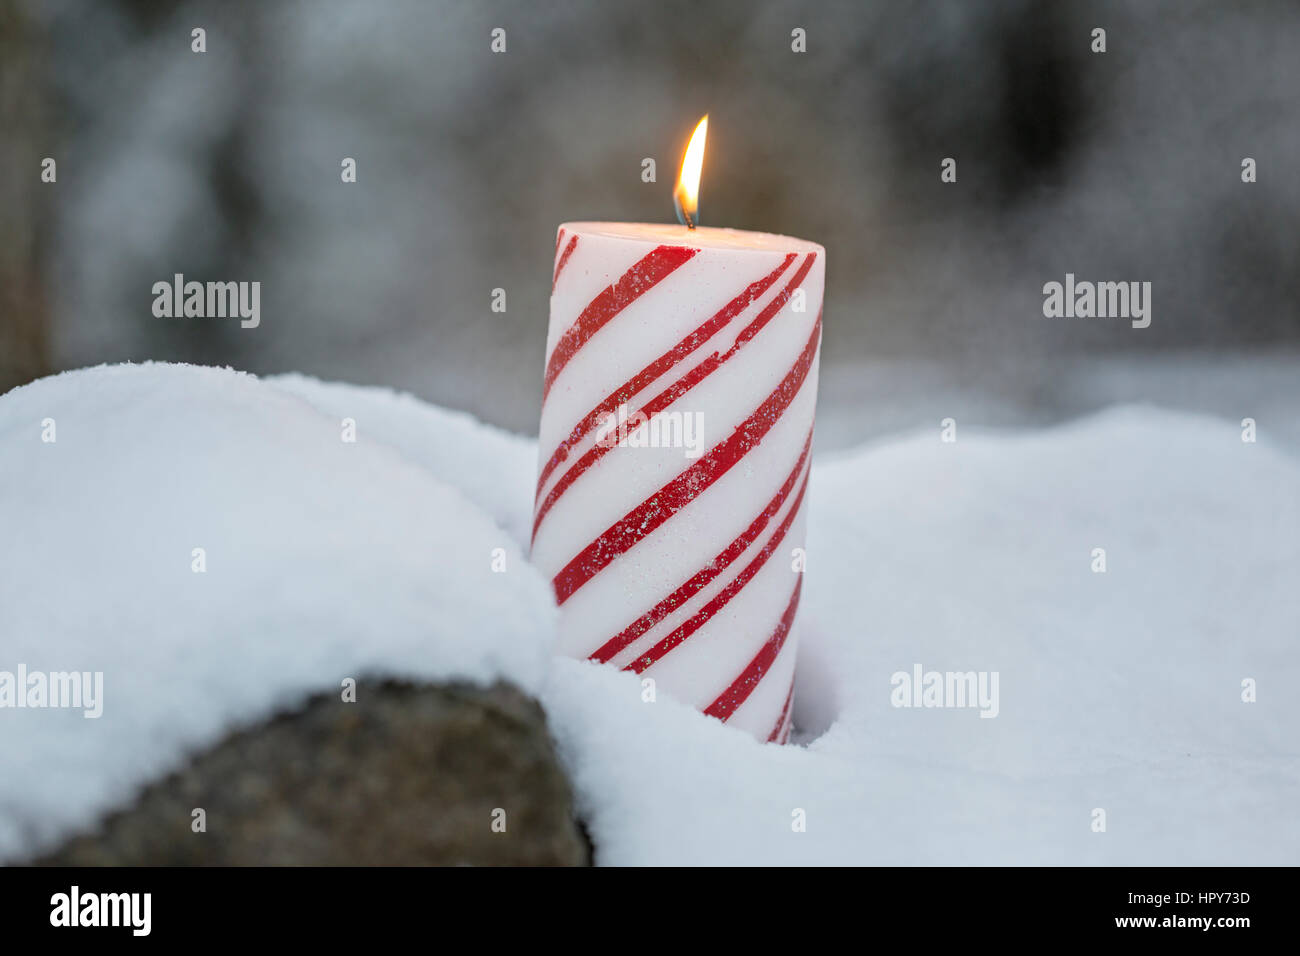 Candle glowing outdoors in snow Stock Photo